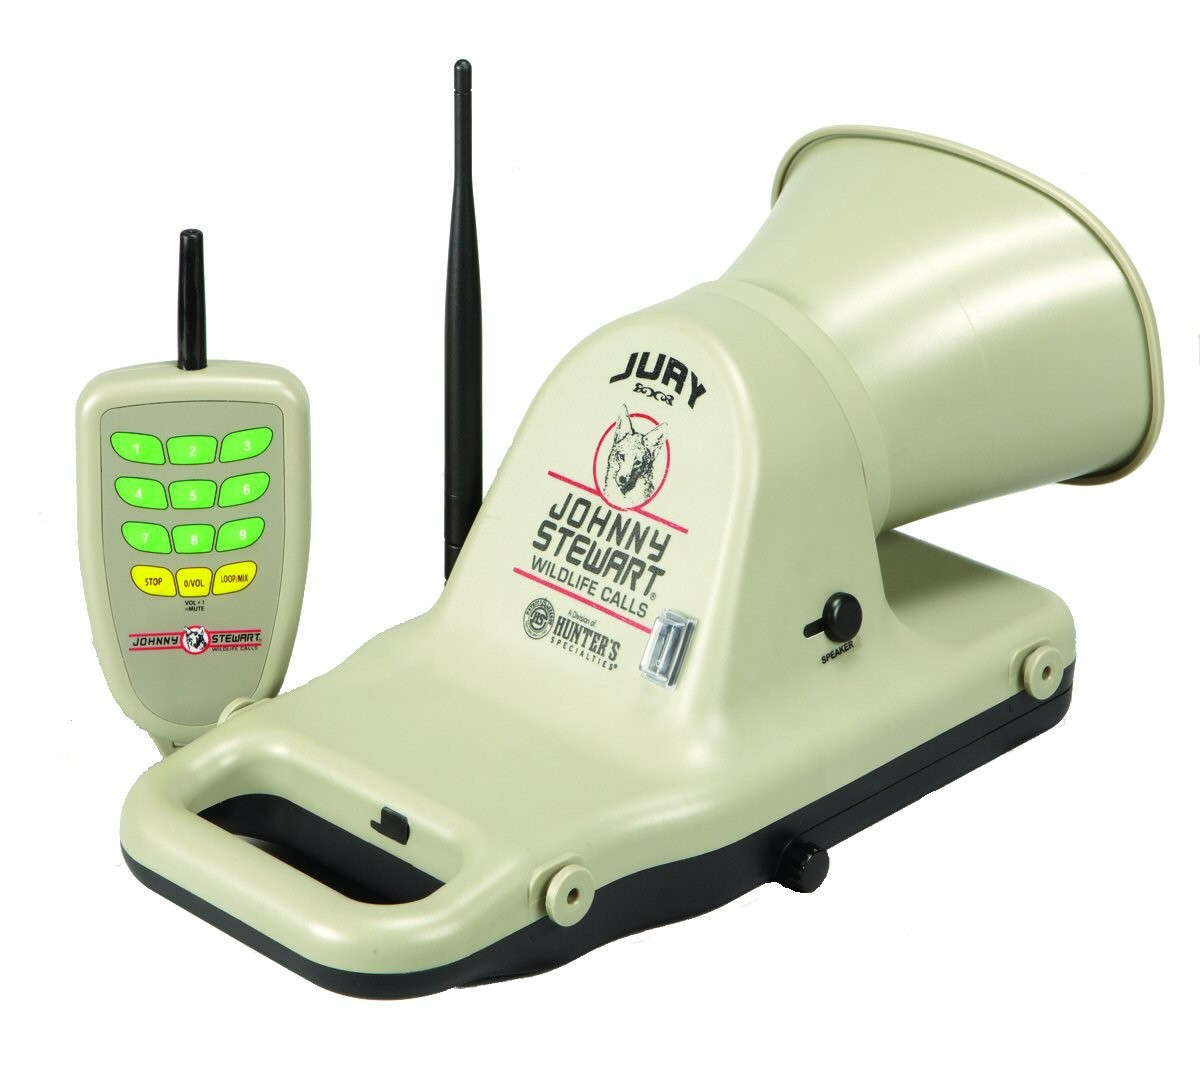 Johnny Stewart JS1 Jury Electronic Game with 25 Calls and Remote Control  #JS1